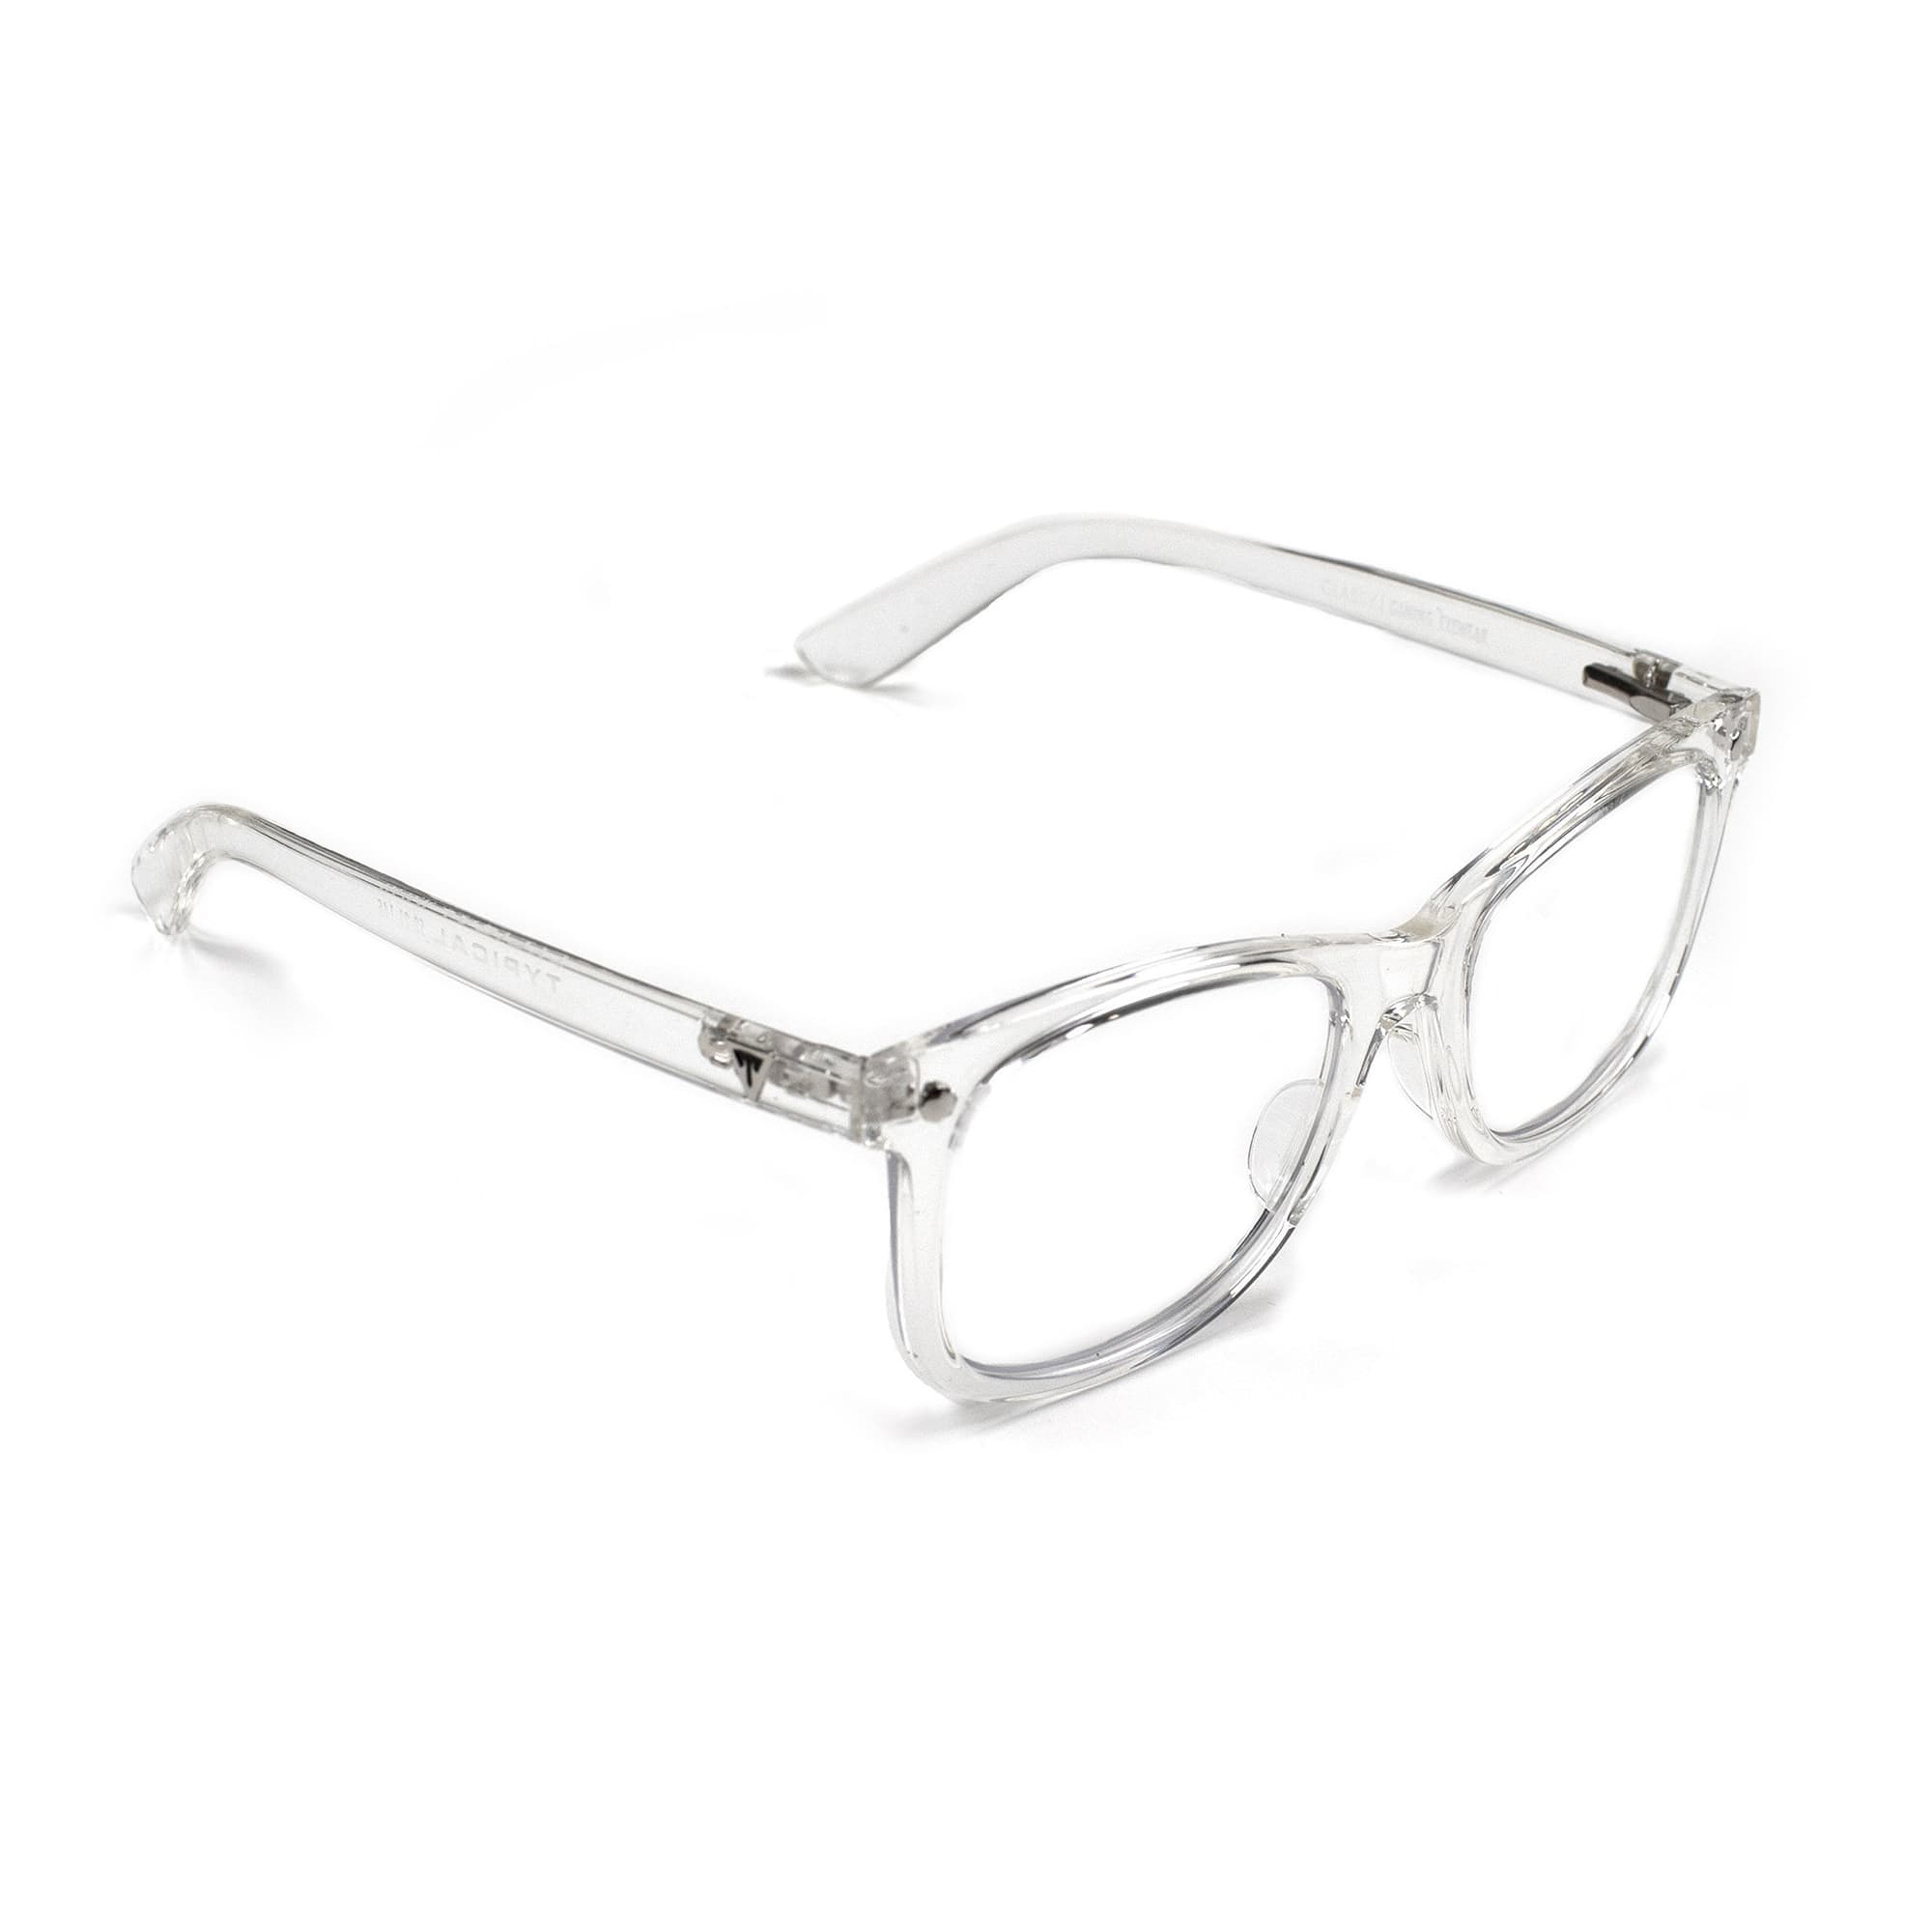 Typical x Glassy Gaming Eyewear Glasses - Clear Frame - SPECIAL EDITION